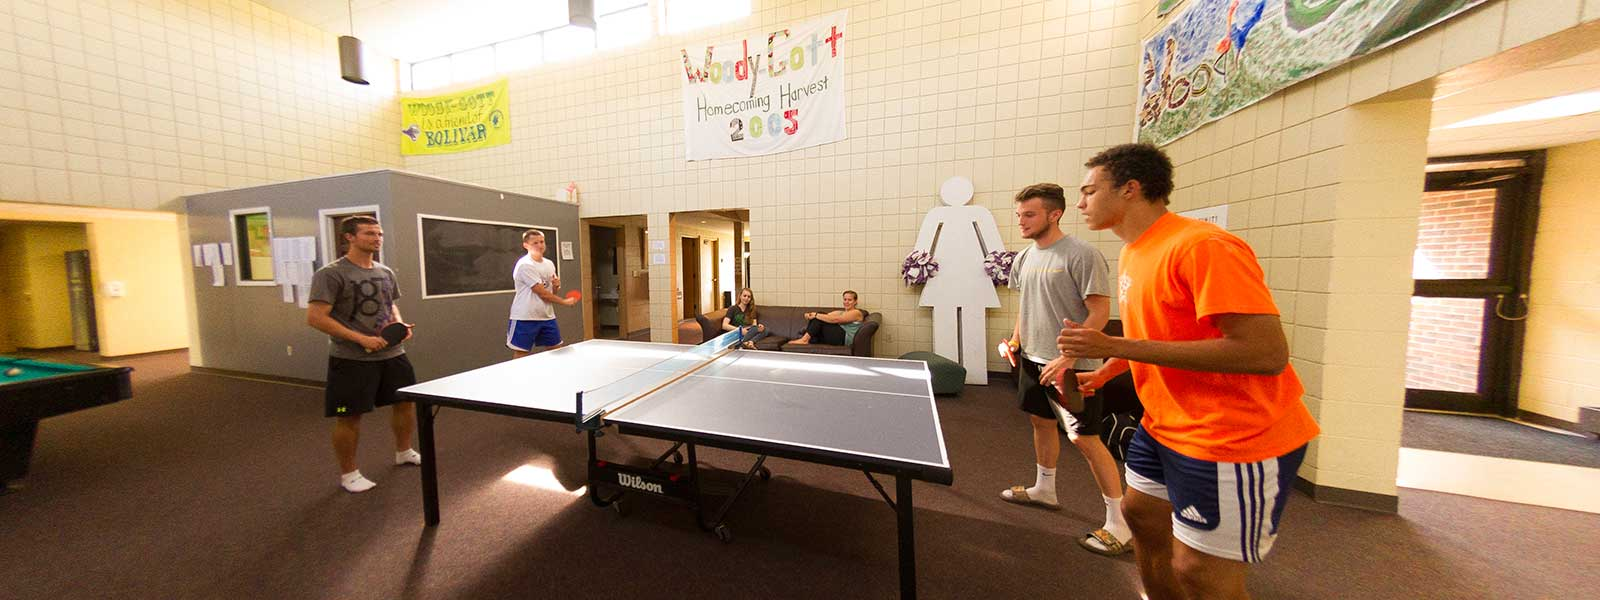 students playing ping-pong in dorm lobby